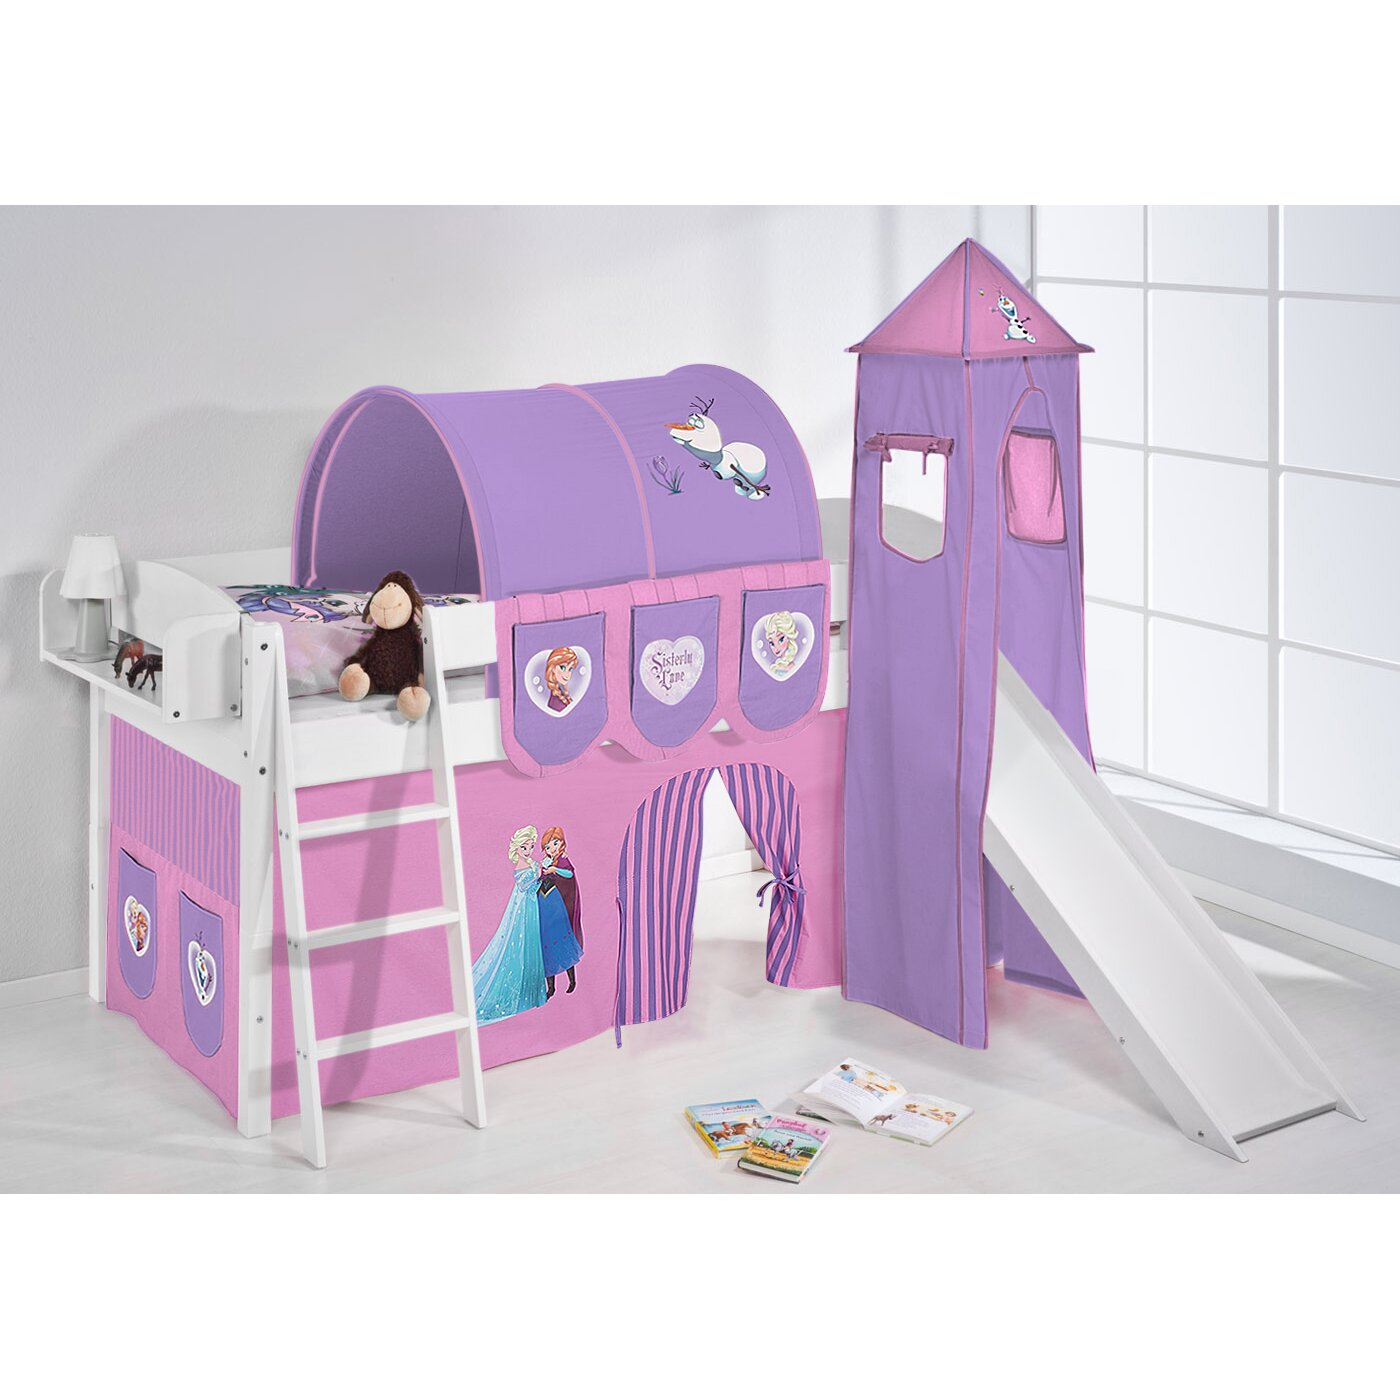 lilokids hochbett disney 39 s frozen mit turm rutsche und vorhang 90 x 200 cm bewertungen. Black Bedroom Furniture Sets. Home Design Ideas